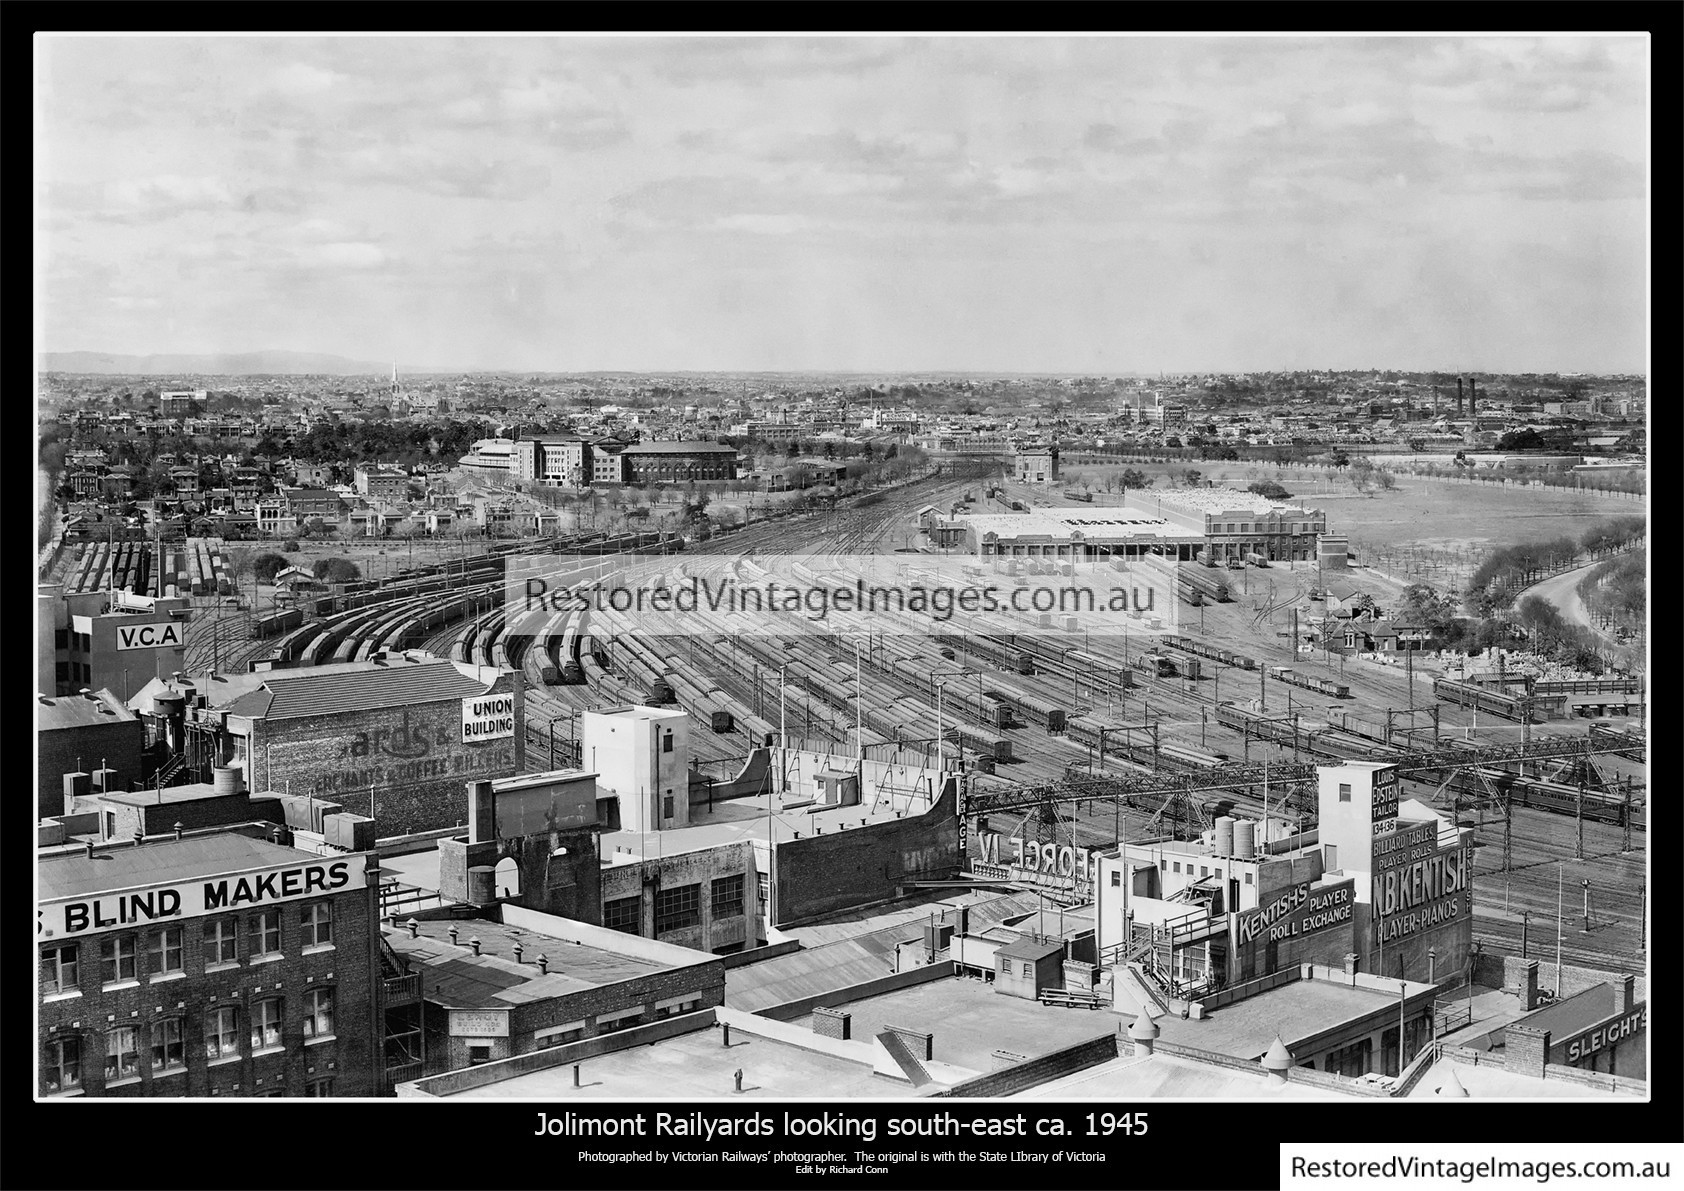 Jolimont Railyards looking south-east ca. 1945